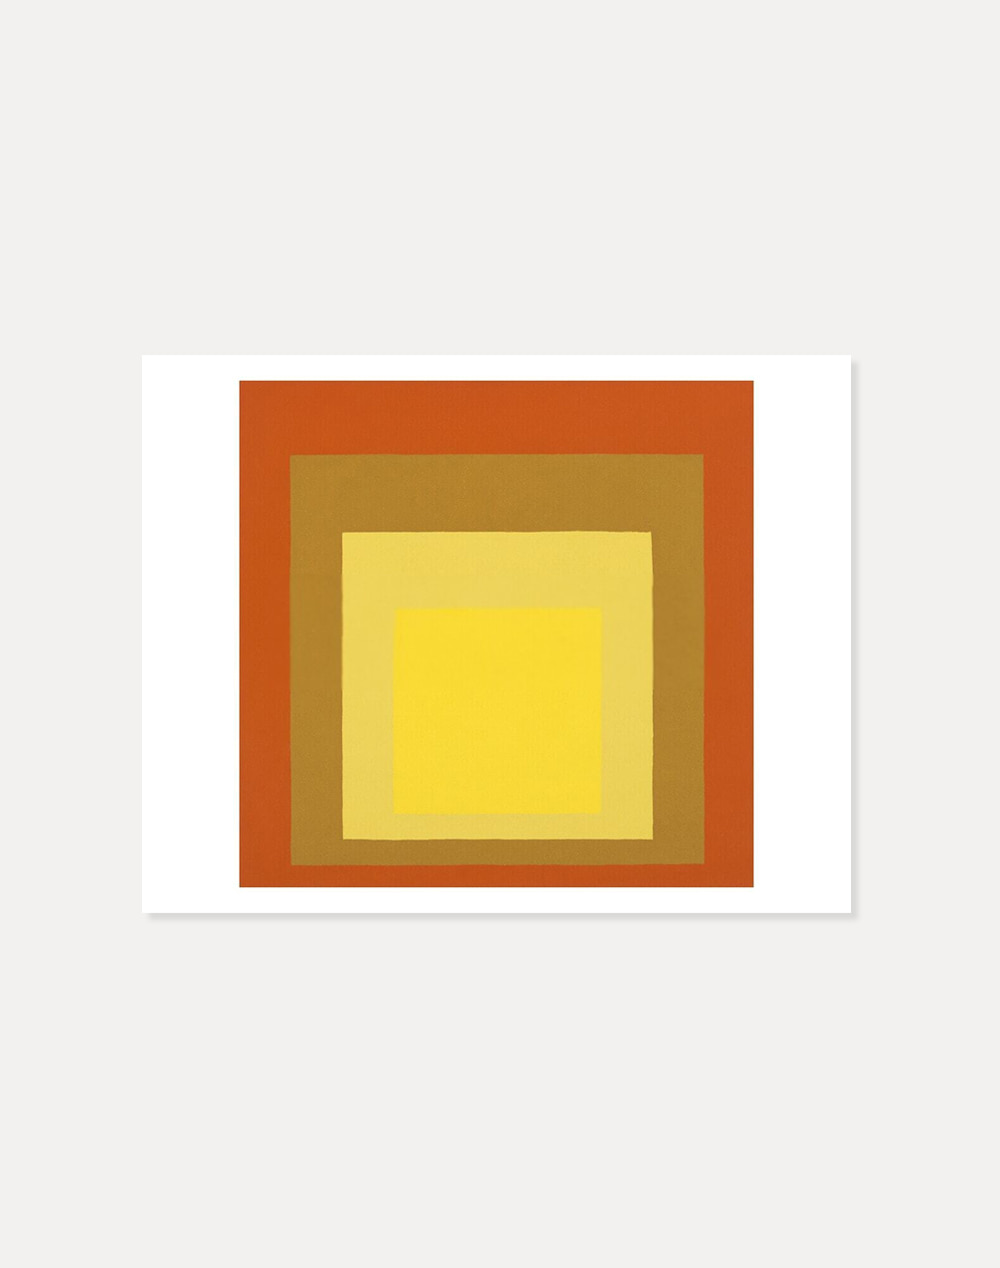 [죠세프 알베르스] Josef Albers —  Study for Homage to the Square:Orange &Yellow 35.5 x 28 cm